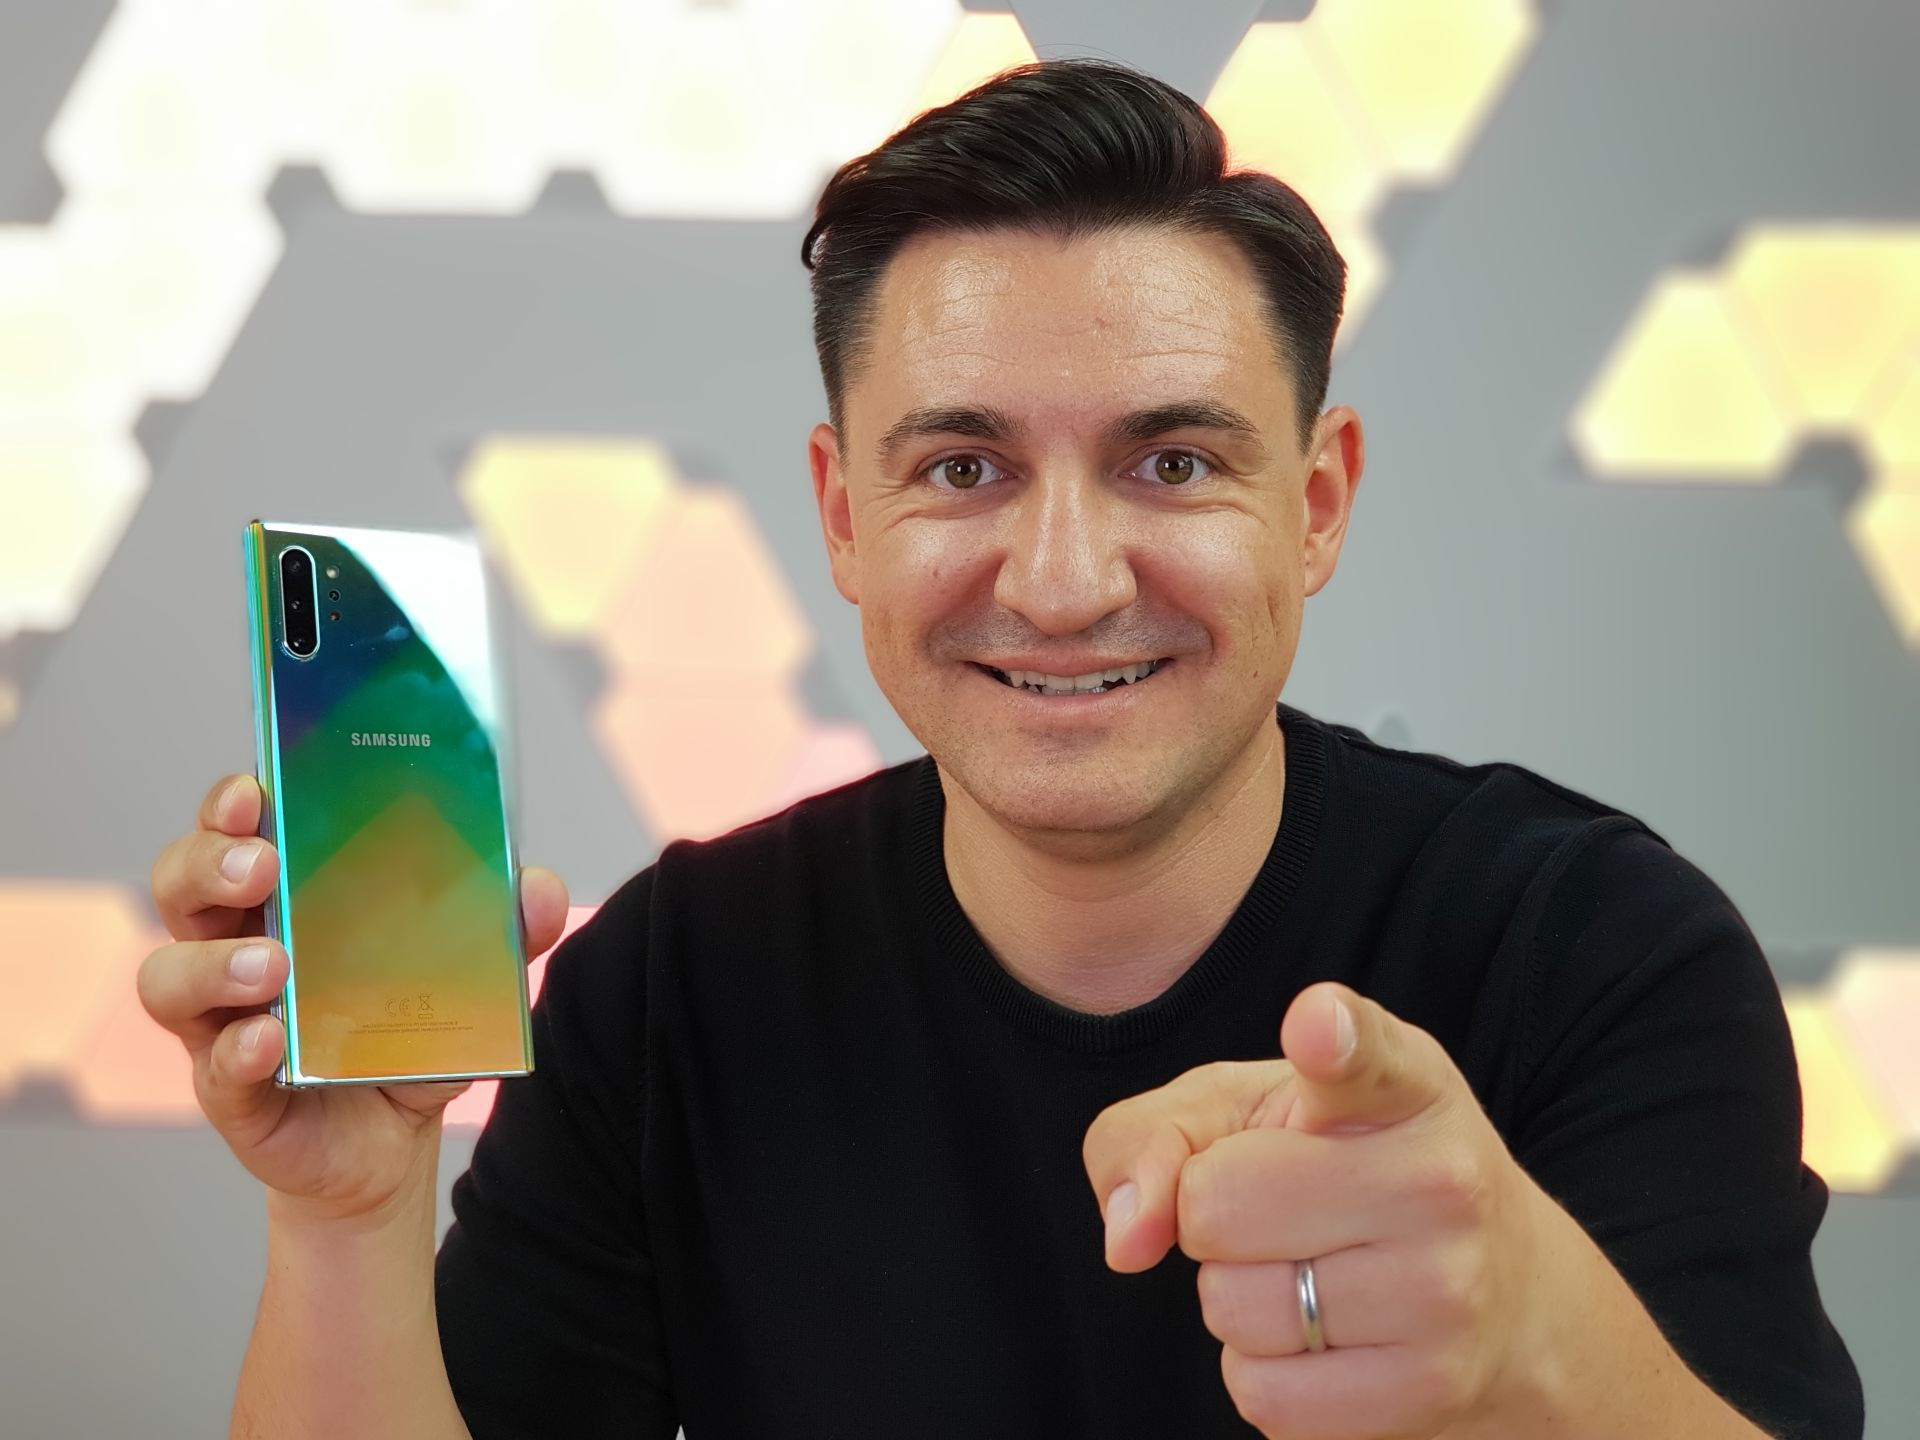 https://buhnici.ro/review-la-huawei-p-smart-da-acel-review-%f0%9f%98%8a%f0%9f%98%8a%f0%9f%98%8a/img_20190204_151640/